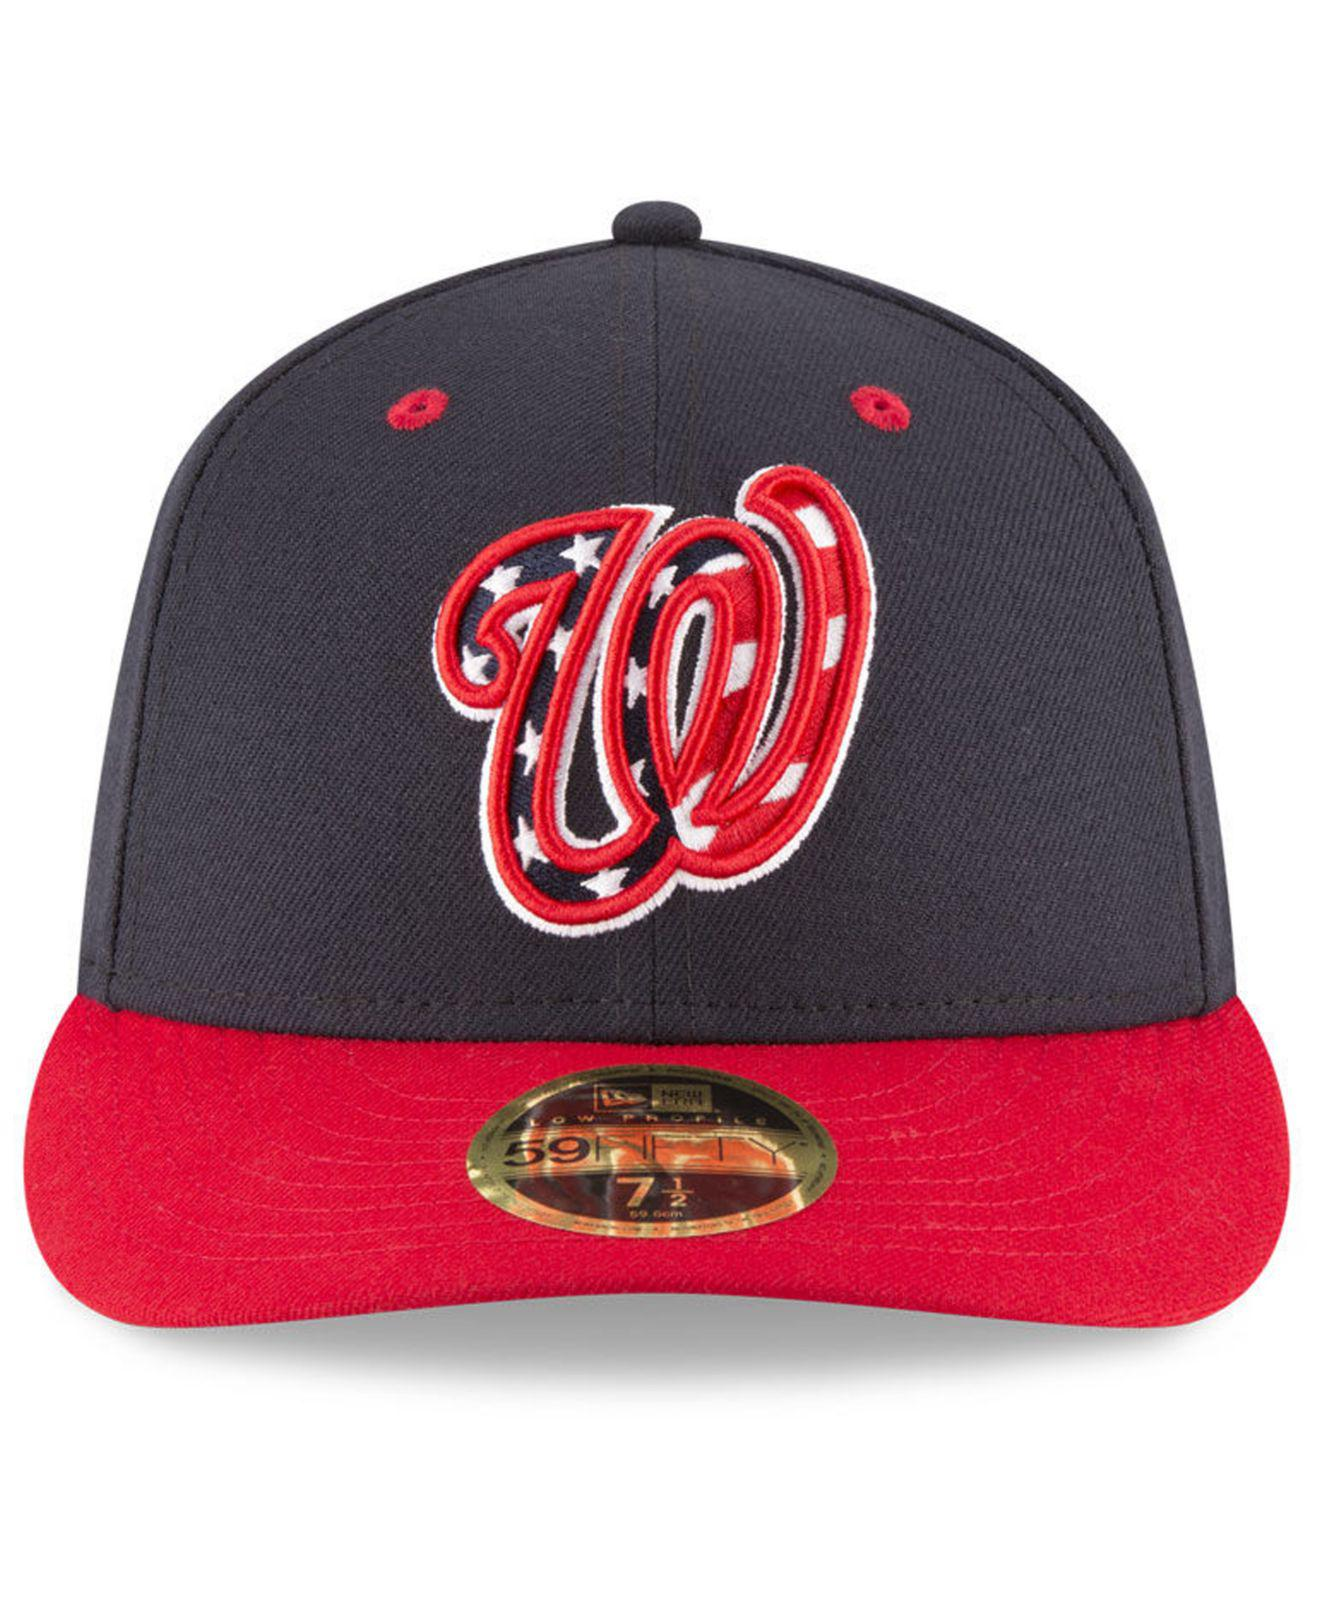 02d2e58781c07 ... low price lyst ktz washington nationals washington all star game patch  low profile 59fifty fitted cap